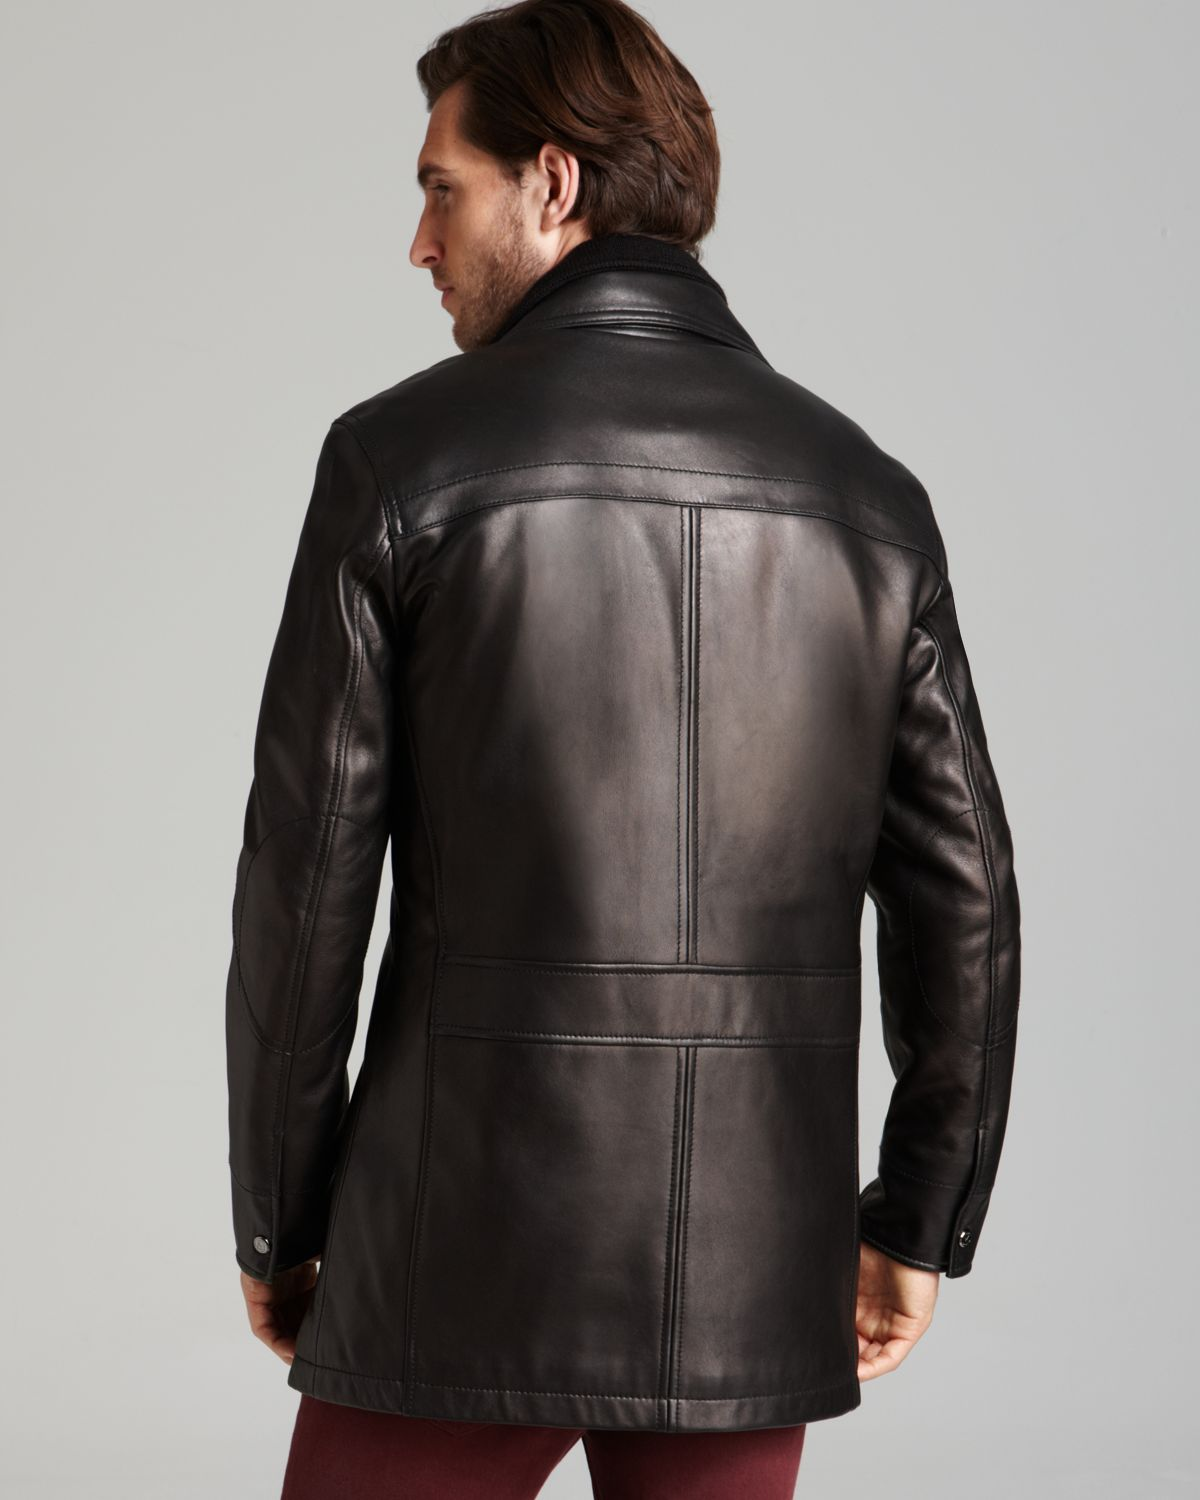 Leather jackets for men nyc